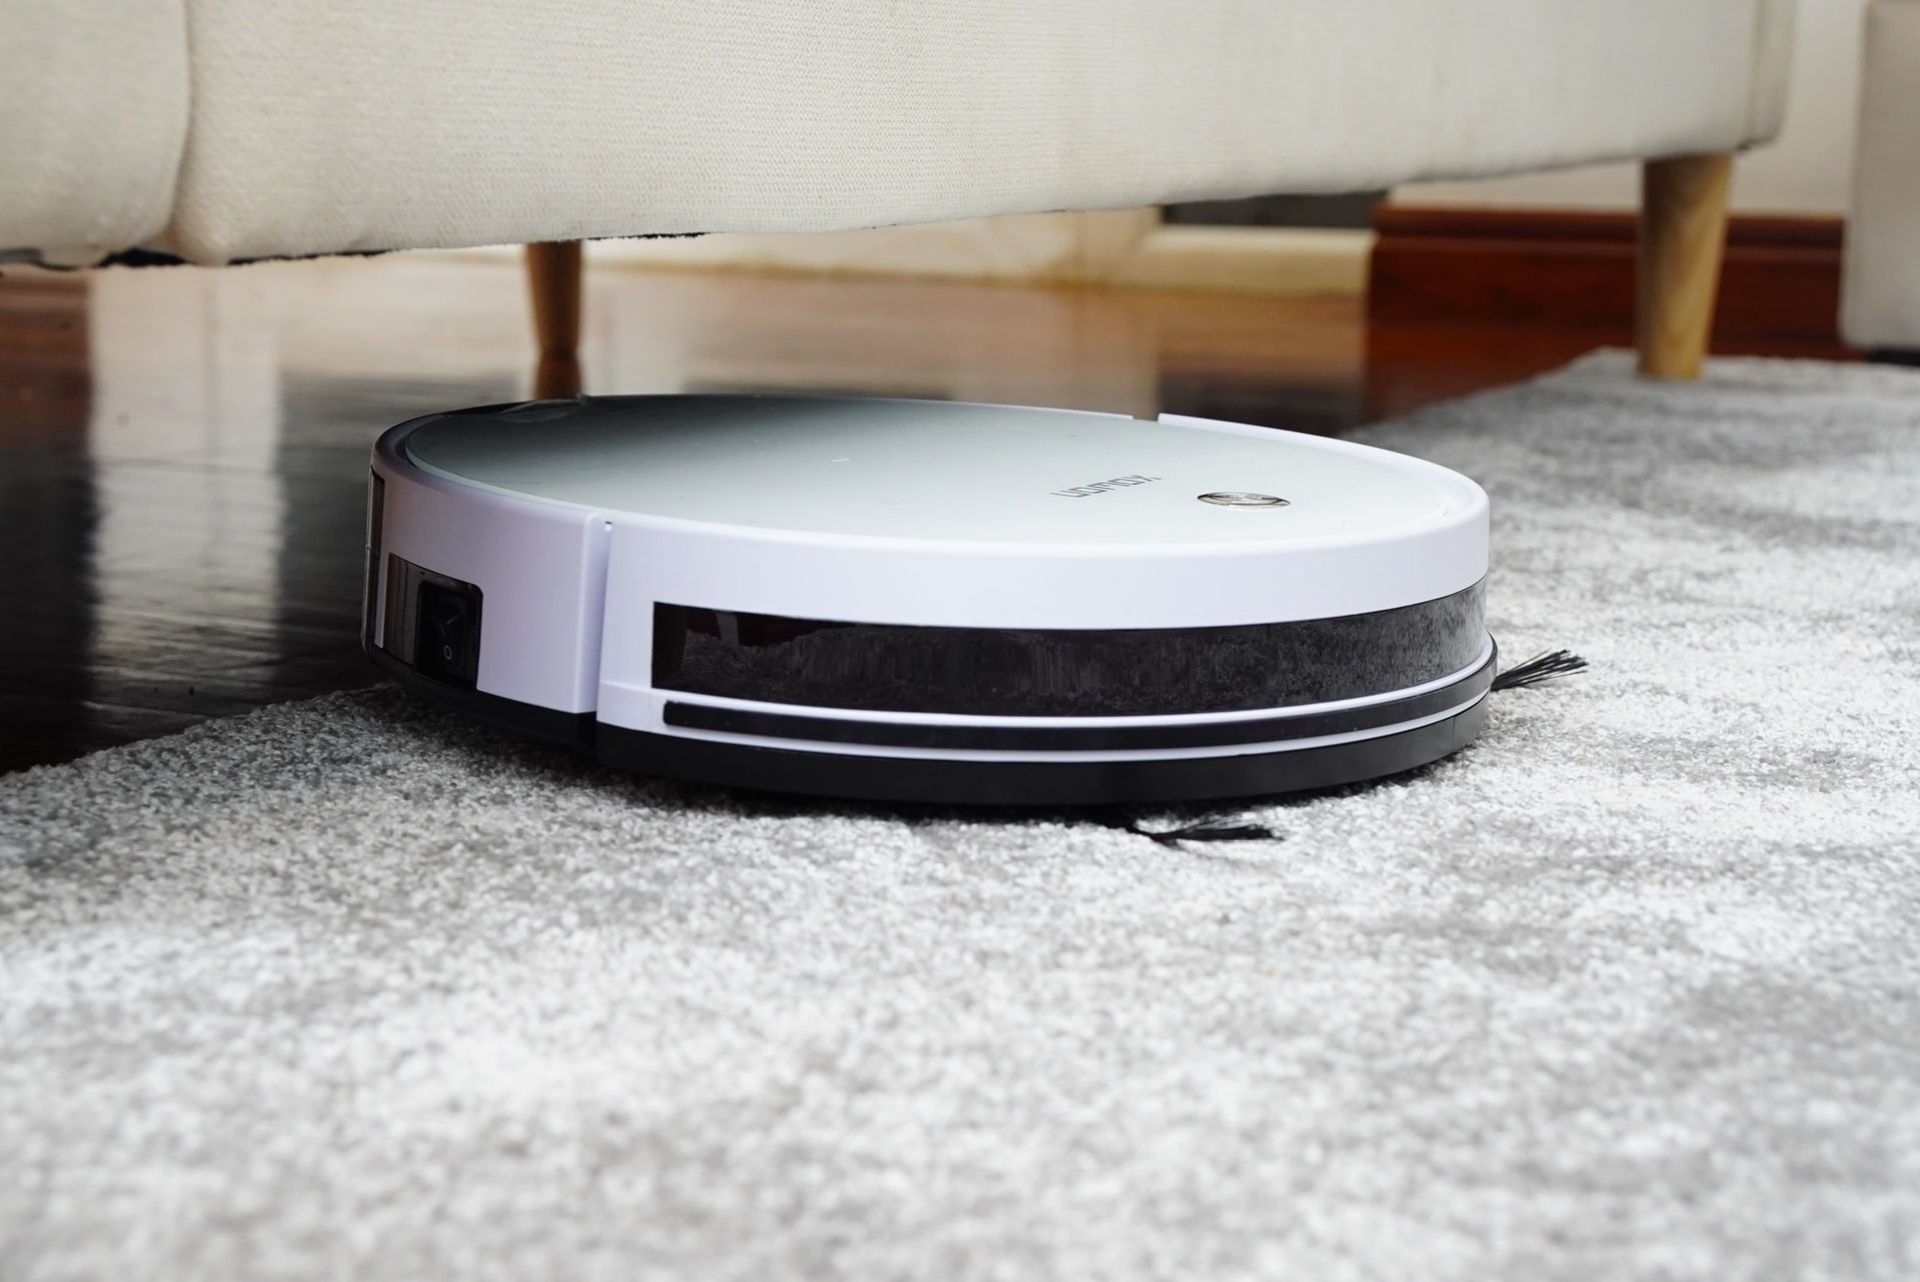 6 Best Robot Vacuum Cleaners To Help With Housecleaning